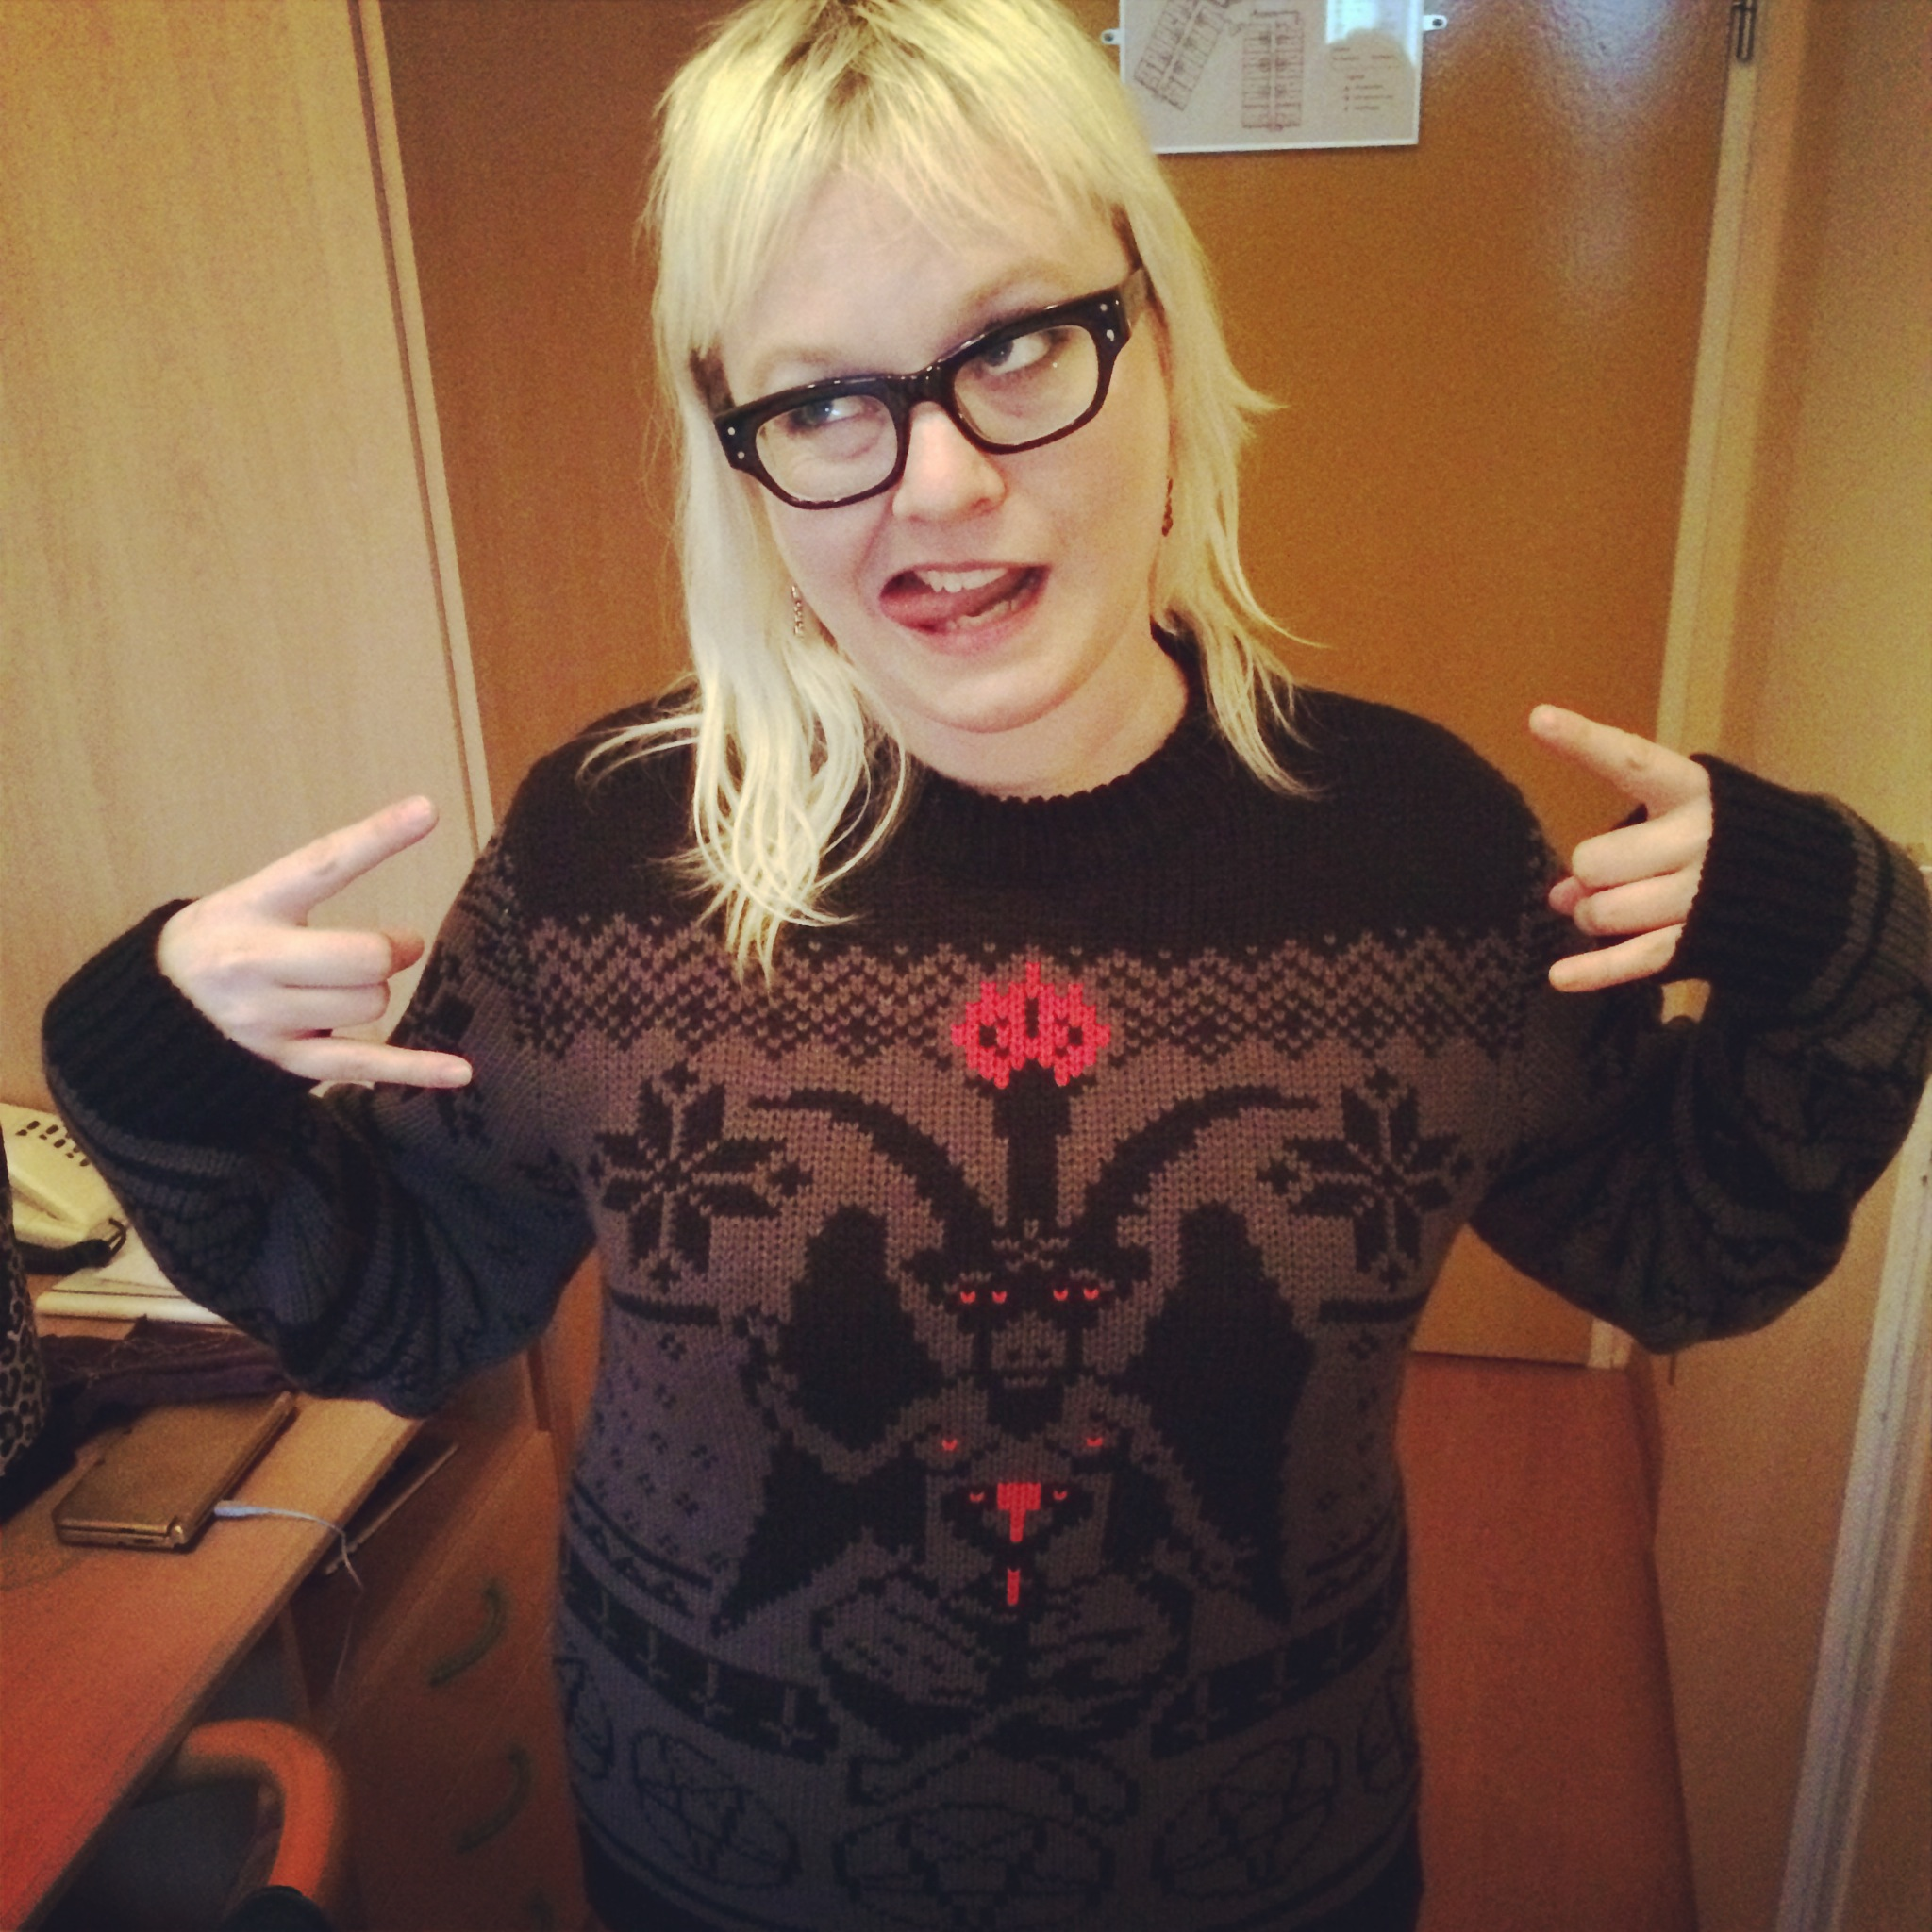 my christmas sweater is the best christmas sweater i got it from shredders sweaters